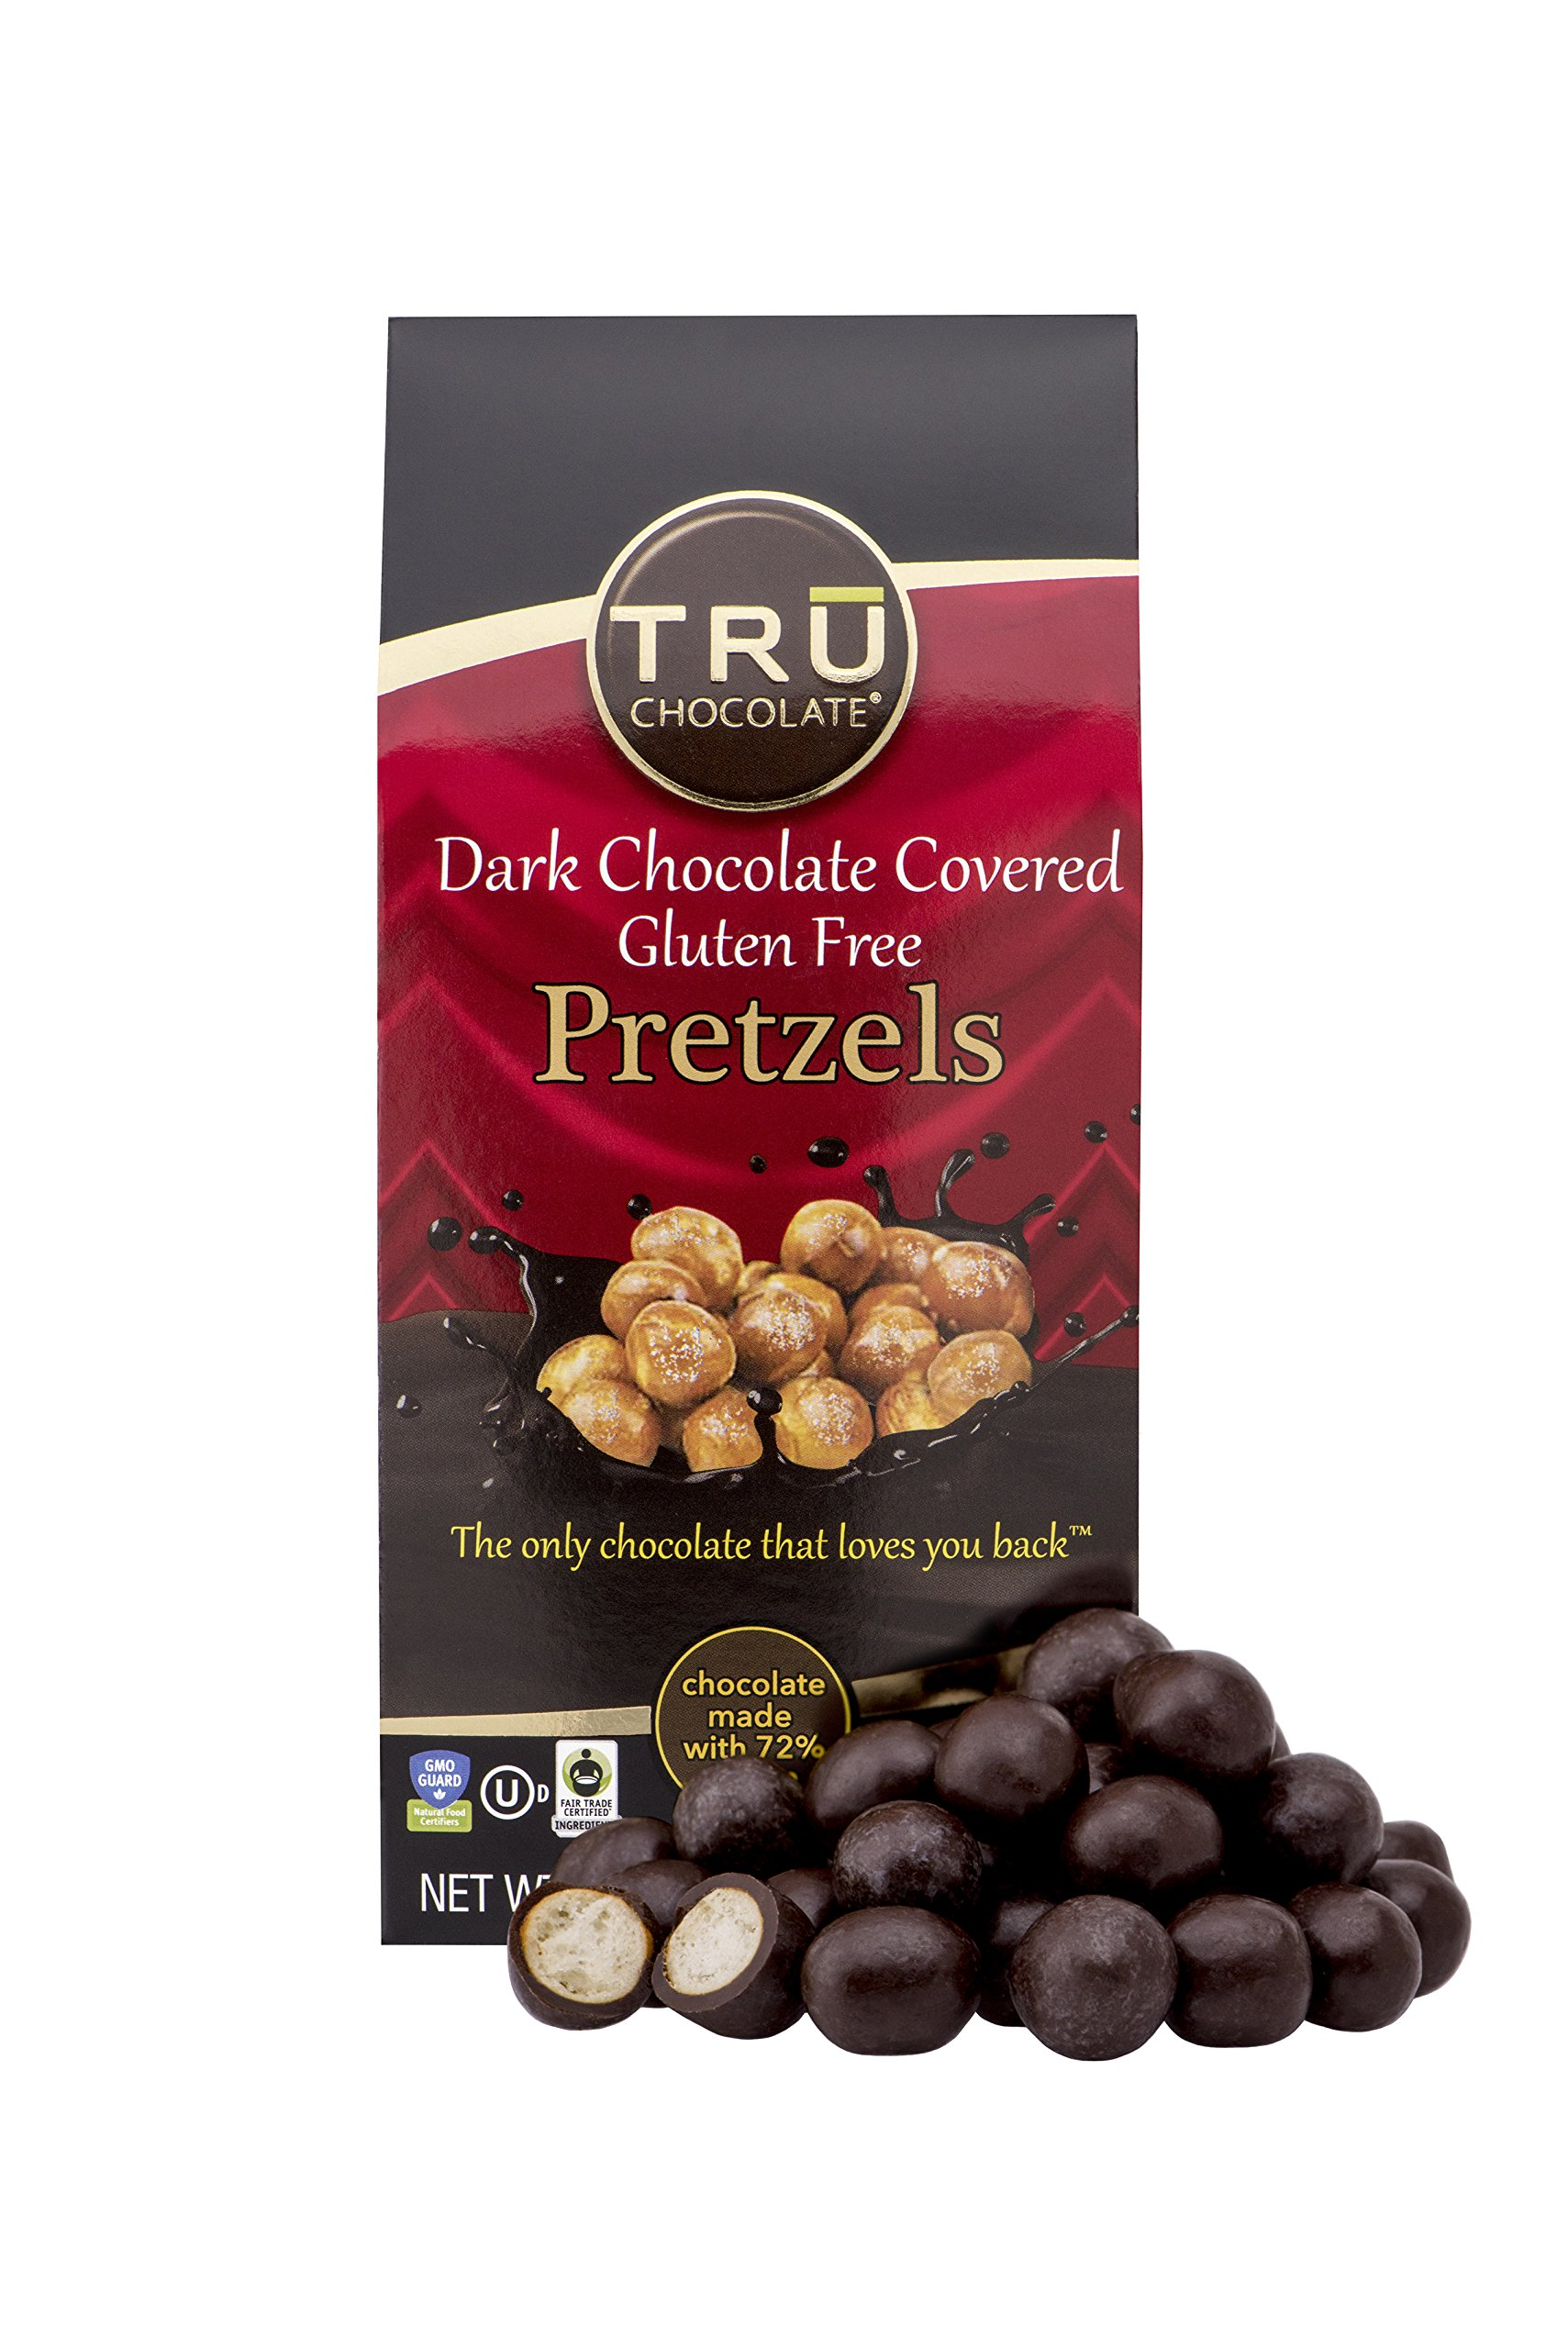 TRU Chocolate 72% Dark Chocolate dipped Pretzels - Gluten Free, NON-GMO, Vegan, Dairy Free, Kosher, All Natural, Sugar Free 3oz.